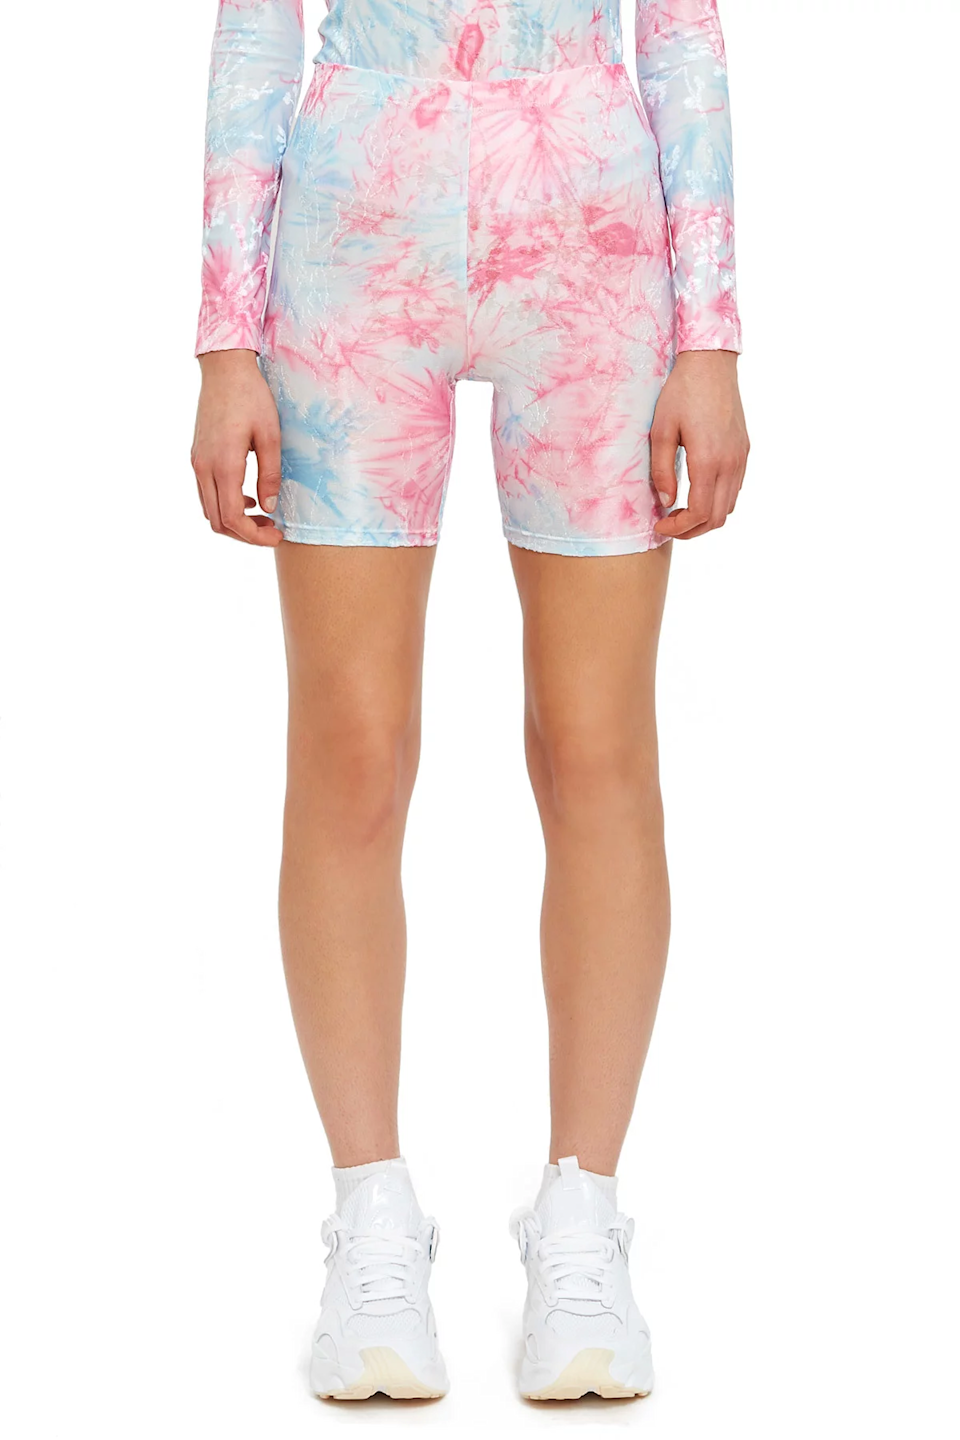 """<br> <br> <strong>Callipygian</strong> Textured Tie Dye Bike Shorts, $, available at <a href=""""https://go.skimresources.com/?id=30283X879131&url=https%3A%2F%2Fwww.openingceremony.com%2Fwomens%2Fcallipygian%2Ftextured-tie-dye-bike-short-ST222671.html"""" rel=""""nofollow noopener"""" target=""""_blank"""" data-ylk=""""slk:Opening Ceremony"""" class=""""link rapid-noclick-resp"""">Opening Ceremony</a>"""